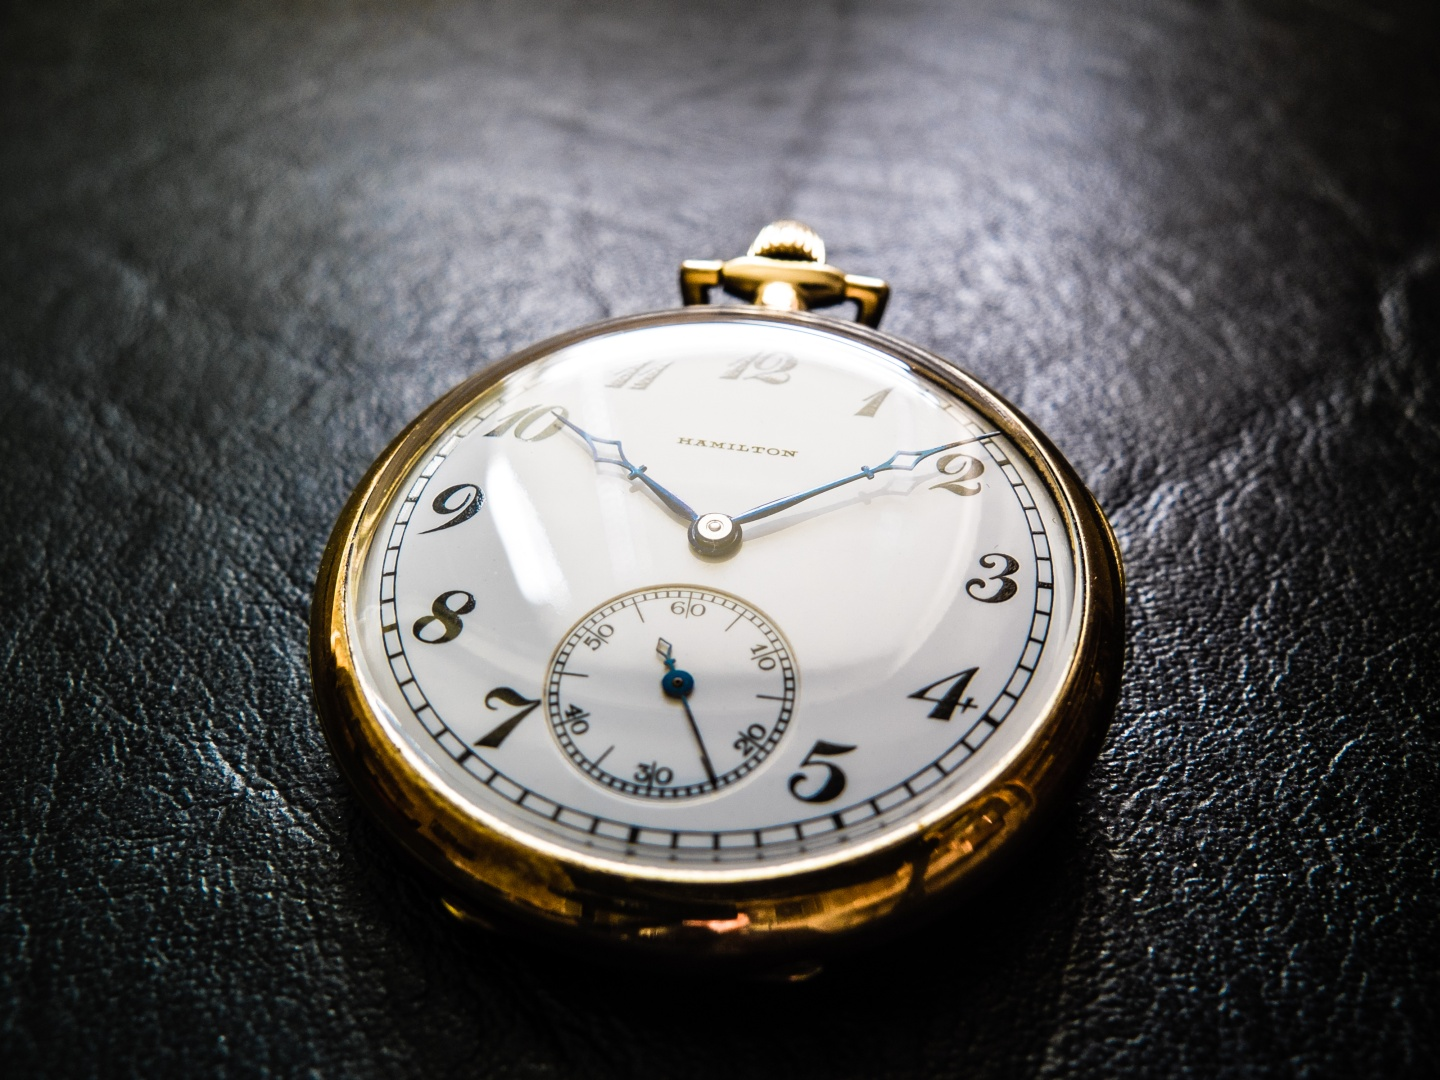 Hamilton 910 Pocket Watch